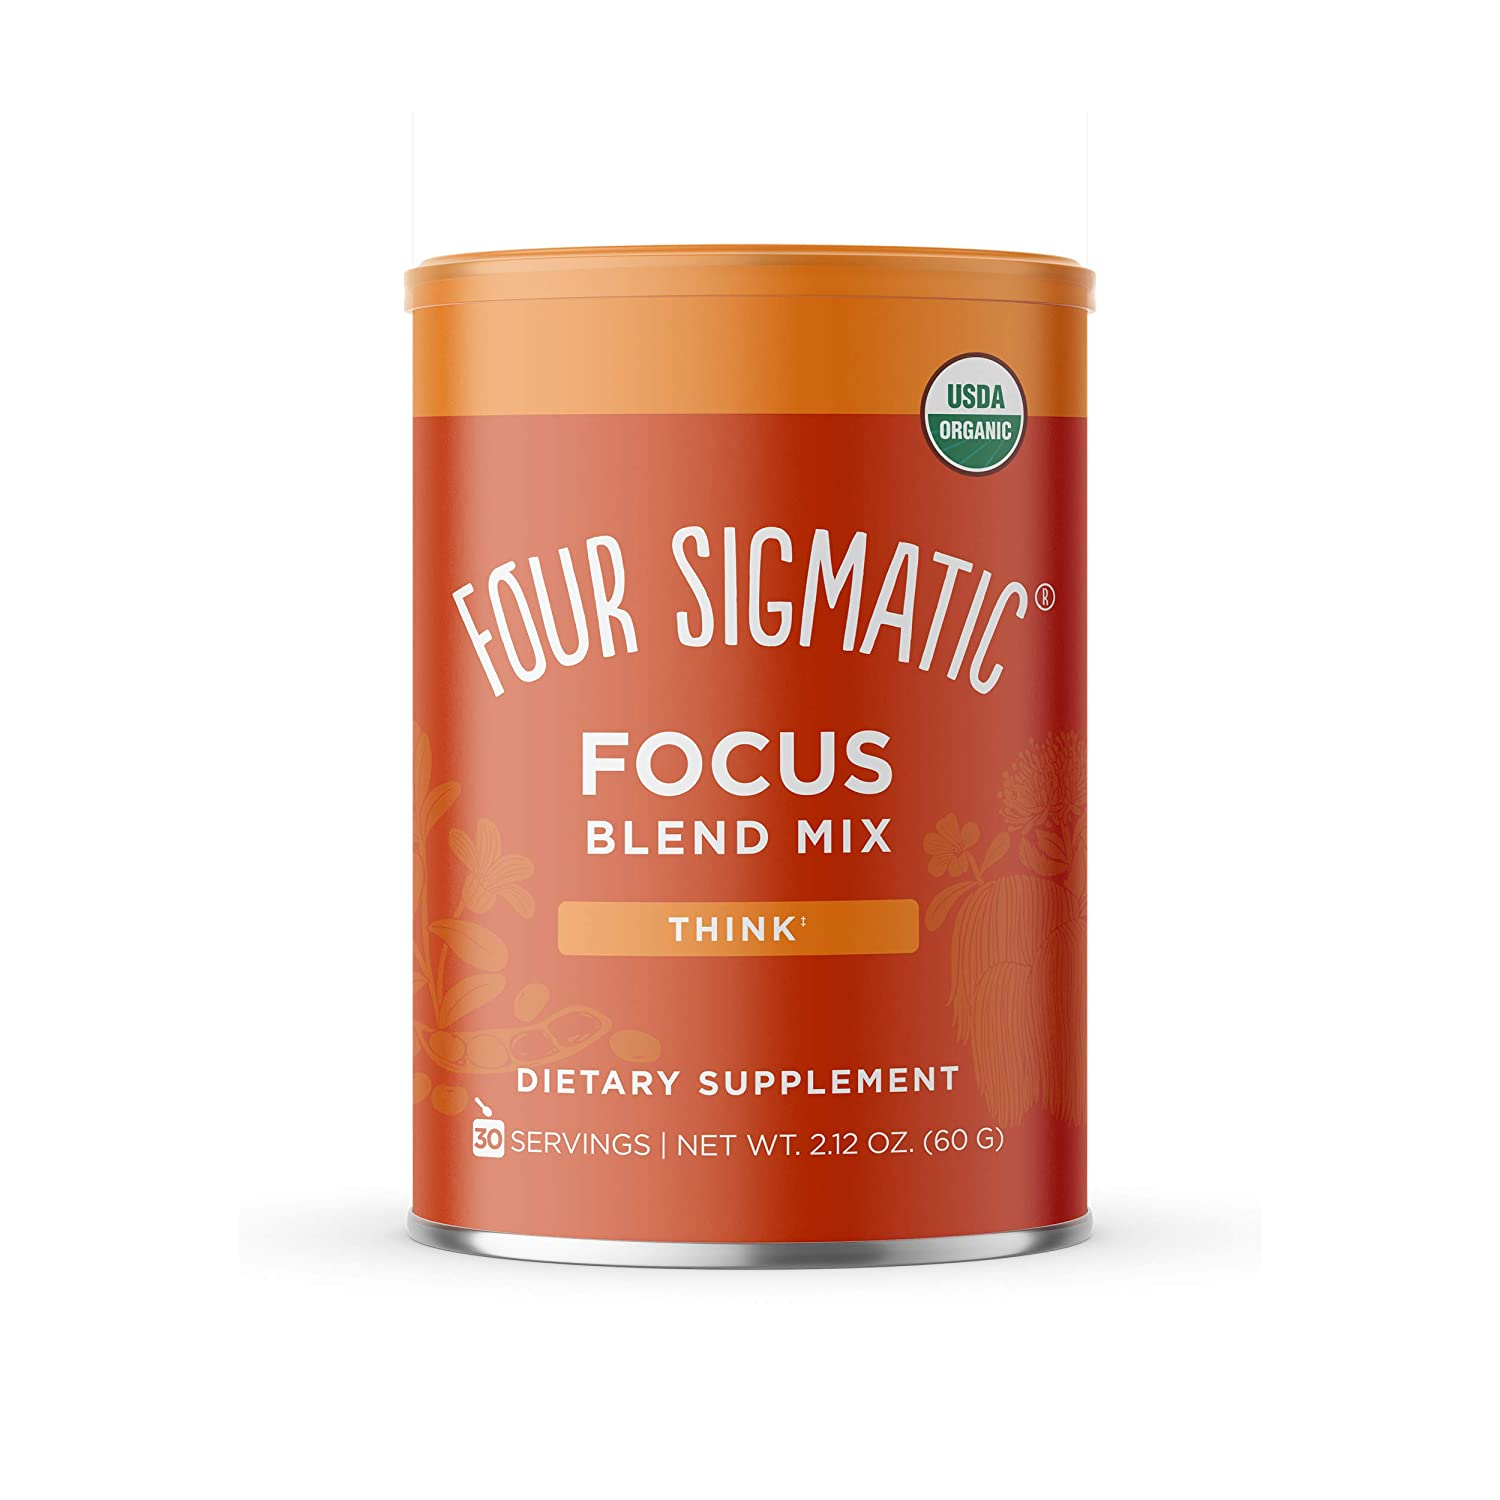 Four Sigma Foods Focus Blend, 8 Superfoods Adaptogen Blend Mix with Lion's Mane, Cordyceps, Rhodiola, Bacopa & Mucuna, Productivity & Creative Support, Decaf + Dissolves Easily, 30 Servings